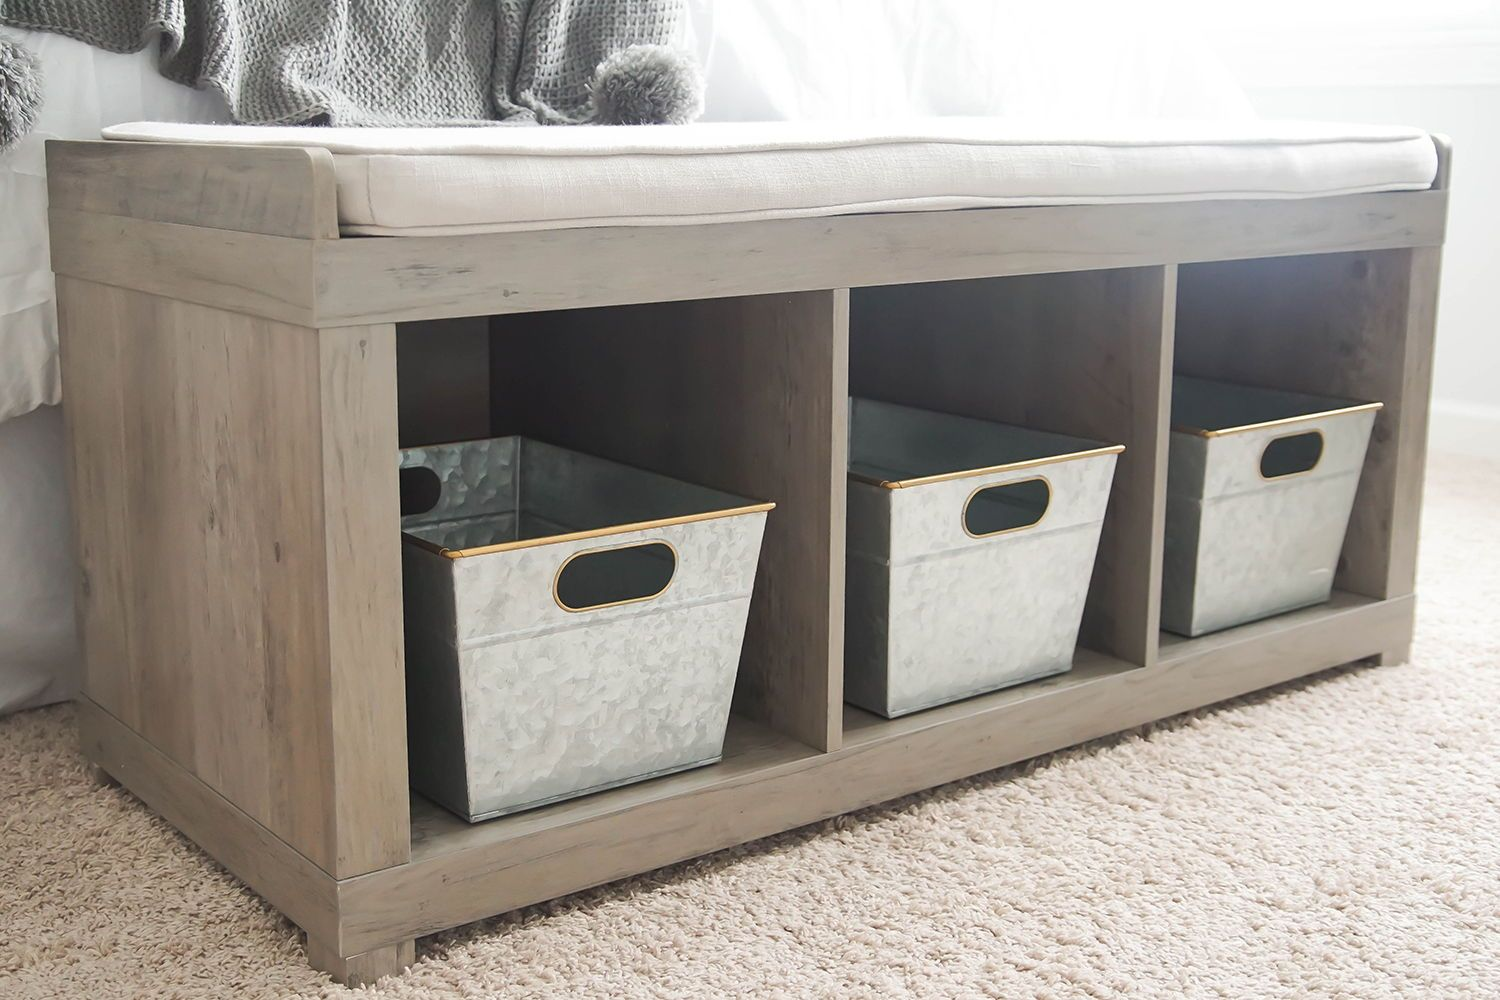 Better Homes And Gardens 3 Cube Organizer Storage Bench Rustic Gray Walmart Com In 2020 Cube Organizer Storage Bench Toy Room Organization